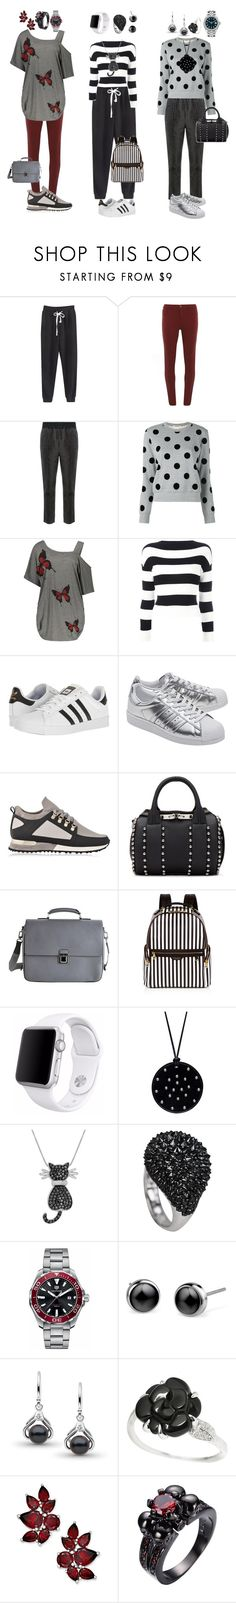 """""""Sem título #118"""" by criscaruccio ❤ liked on Polyvore featuring Dorothy Perkins, Haider Ackermann, Boutique Moschino, adidas, adidas Originals, MALLET, Alexander Wang, Louis Vuitton, Henri Bendel and Apple"""